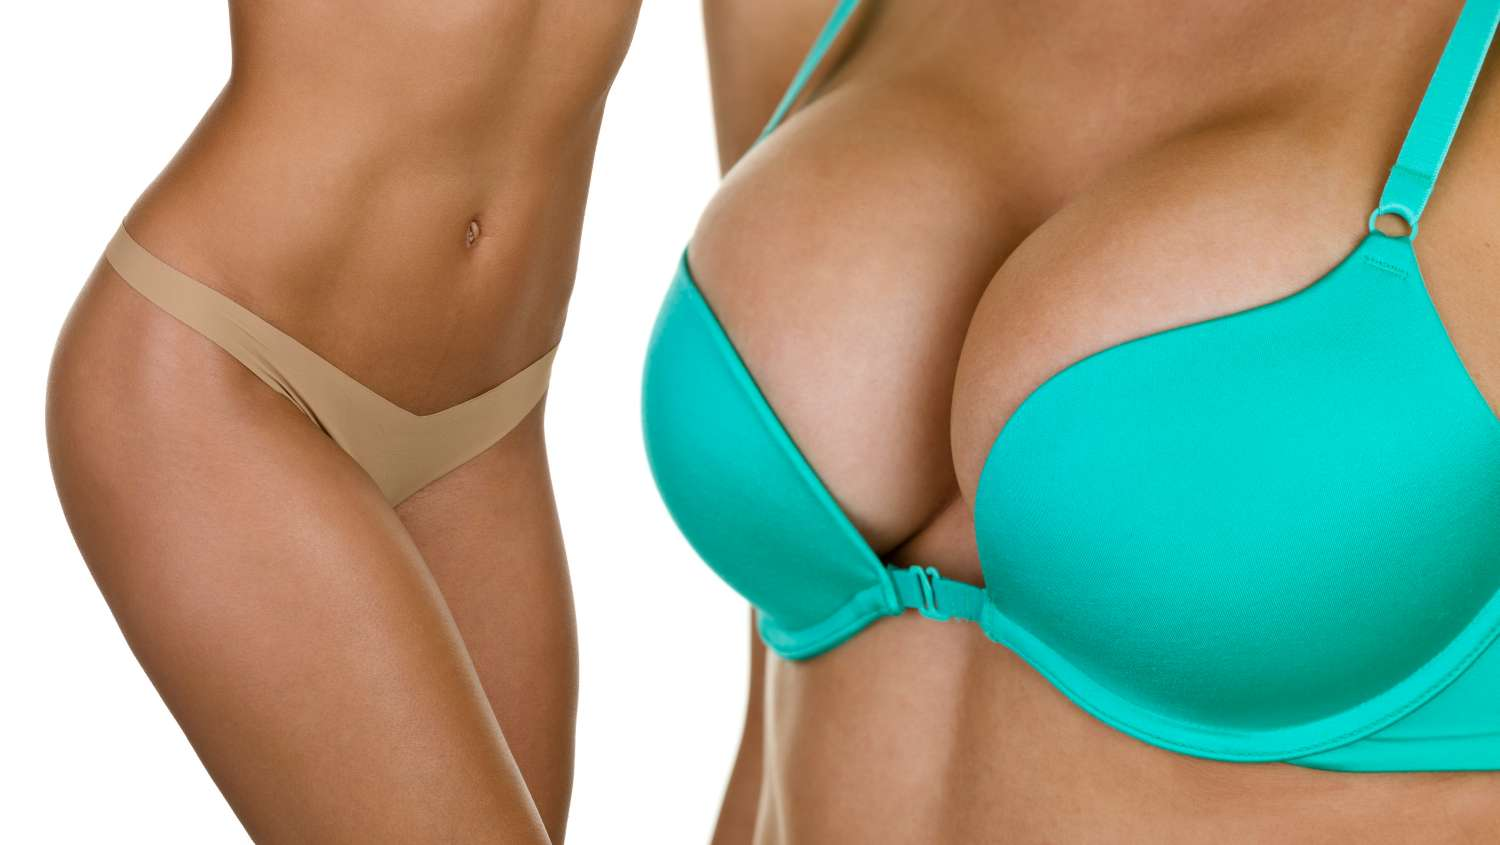 Five myths about the silicone implants